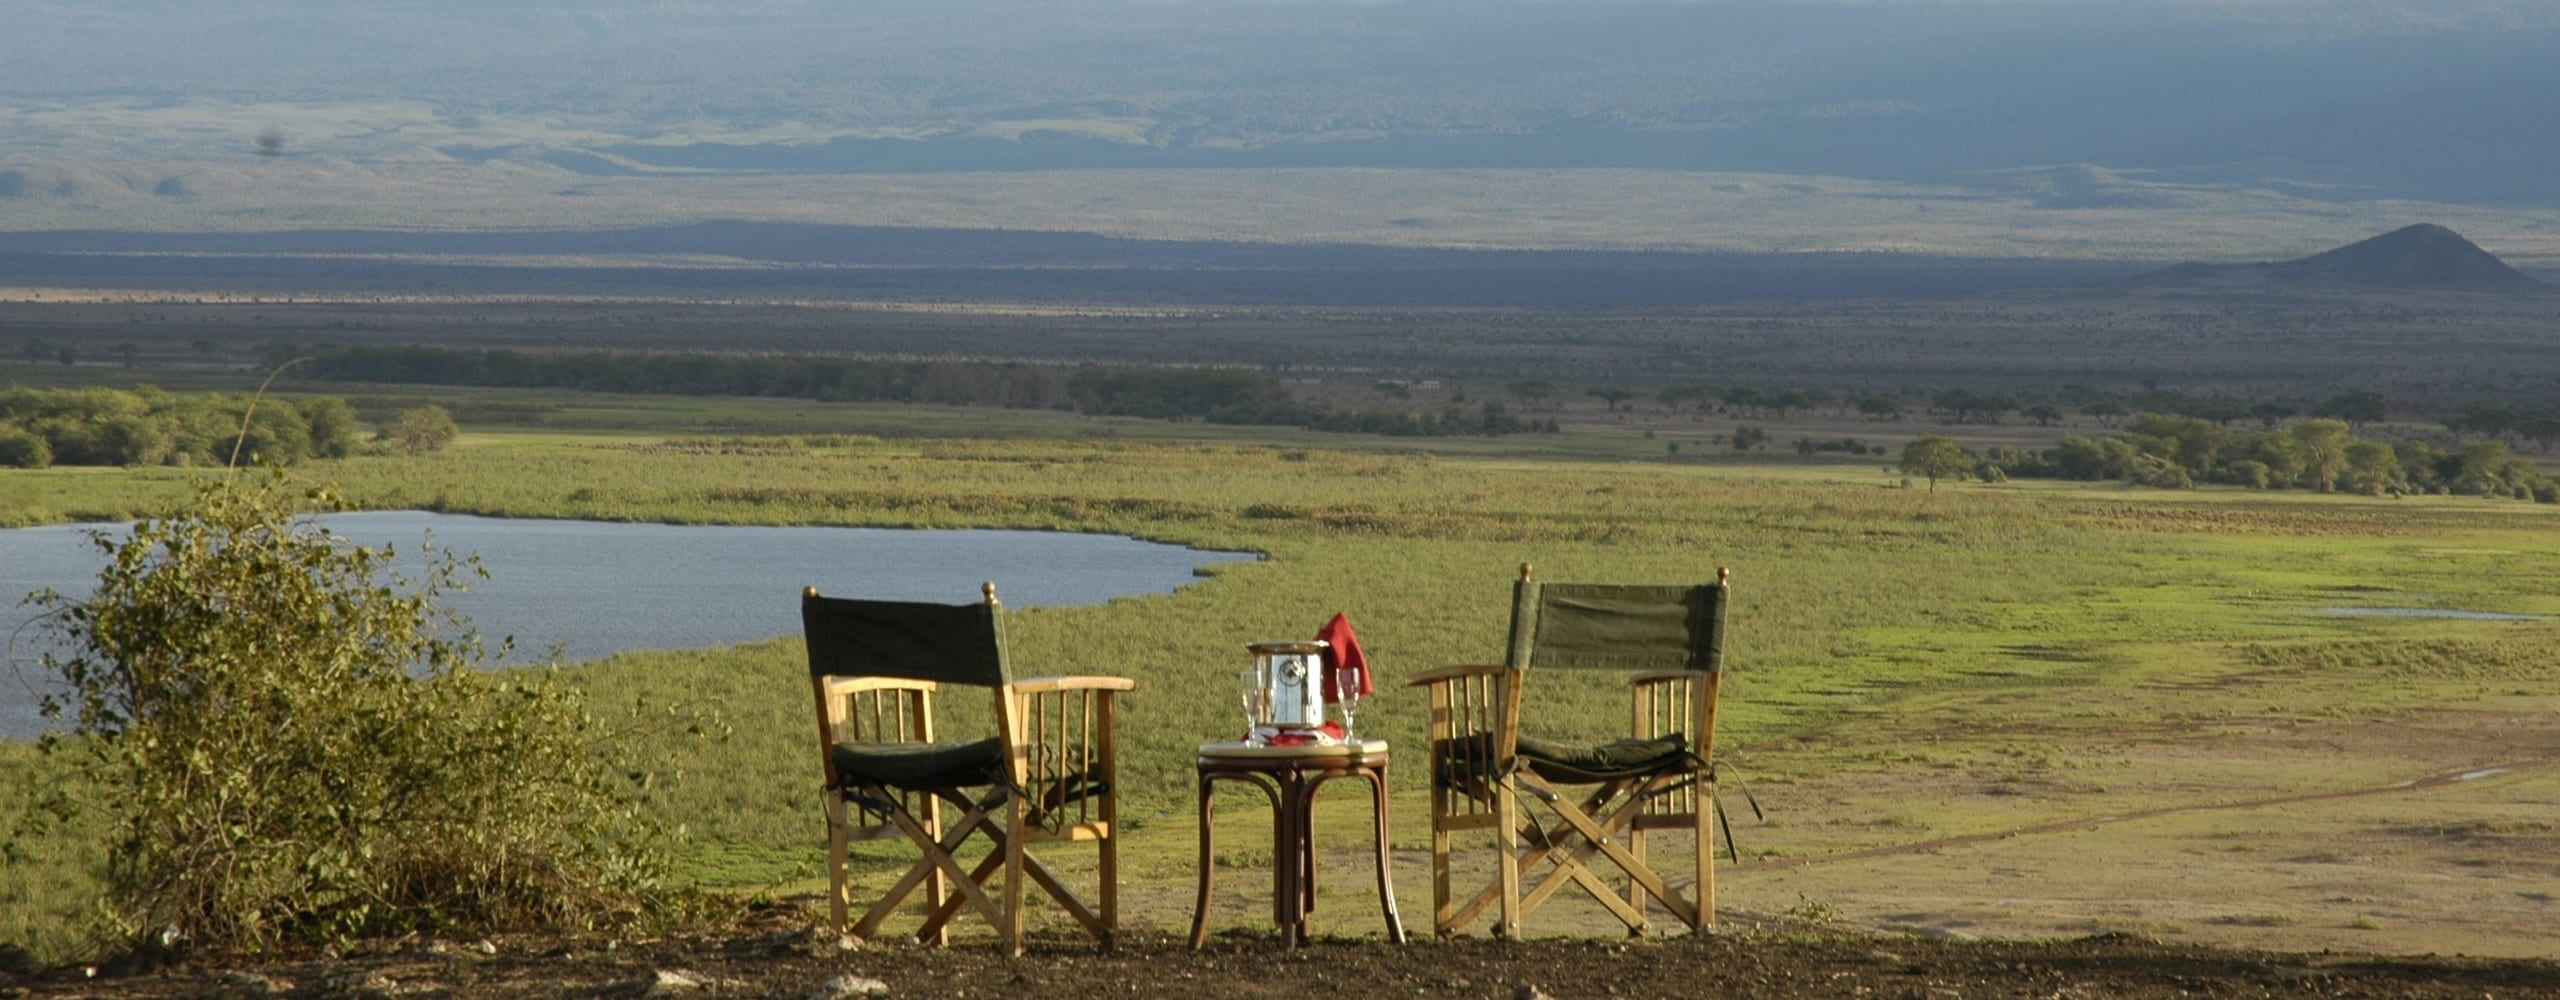 Mount Kilimanjaro, topped off with dazzling white snow, steals the show at Amboseli Serena Safari Lodge. © Serena Hotels